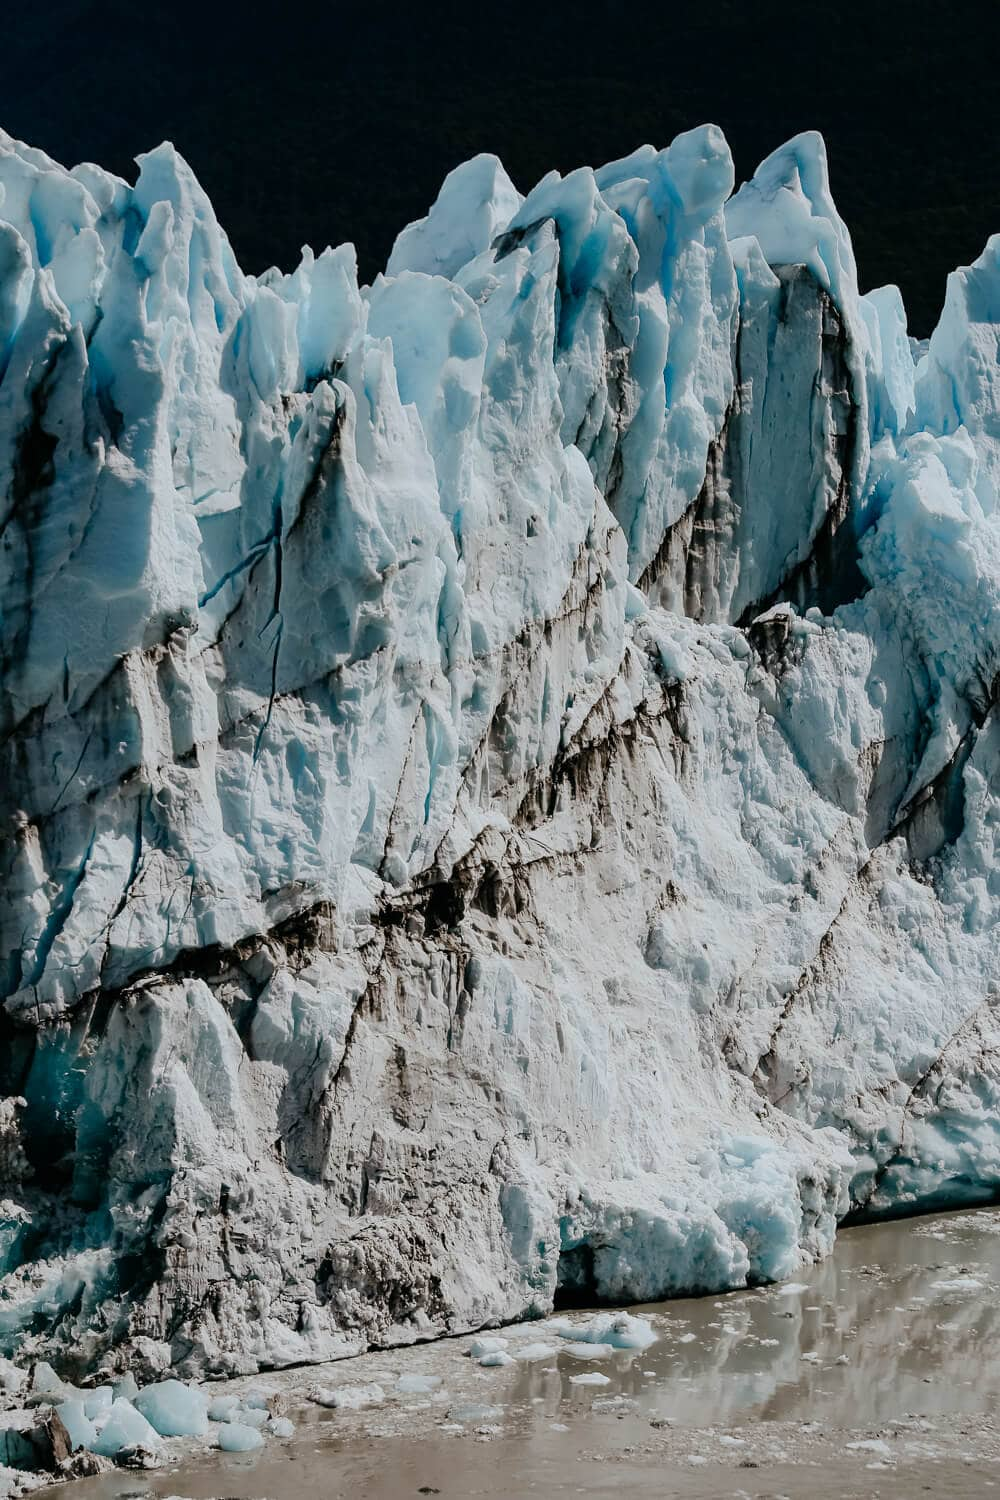 A wall of turquoise blue ice covered with dirt.